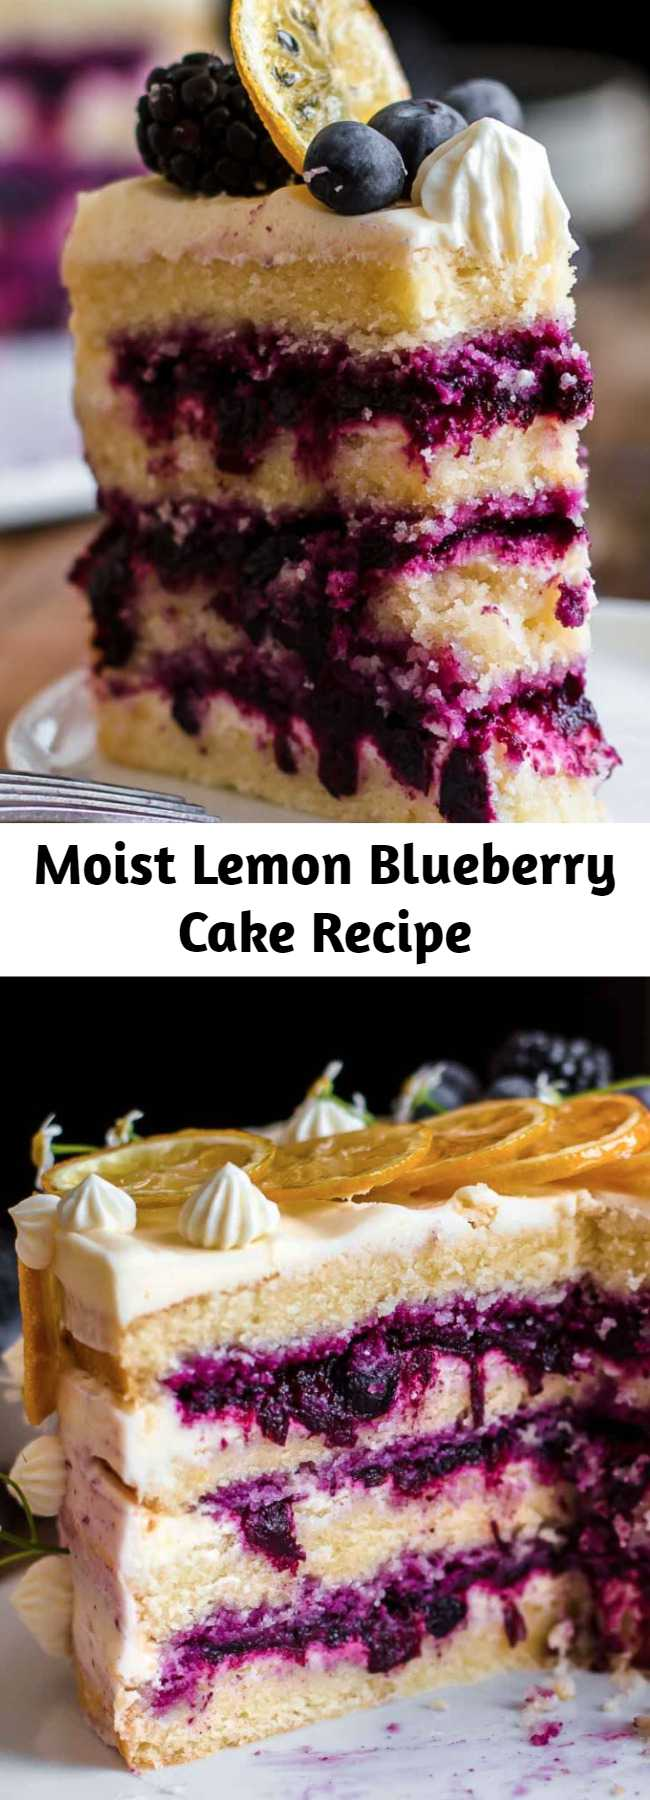 Moist Lemon Blueberry Cake Recipe - This Lemon Blueberry Cake is tangy, sweet, super moist, and creamy. The soft lemon cake layers are filled with a blueberry sauce filling and an ultra-creamy lemon cream cheese frosting. #lemon #blueberry #cake #creamcheesefrosting #baking #sweets #dessert